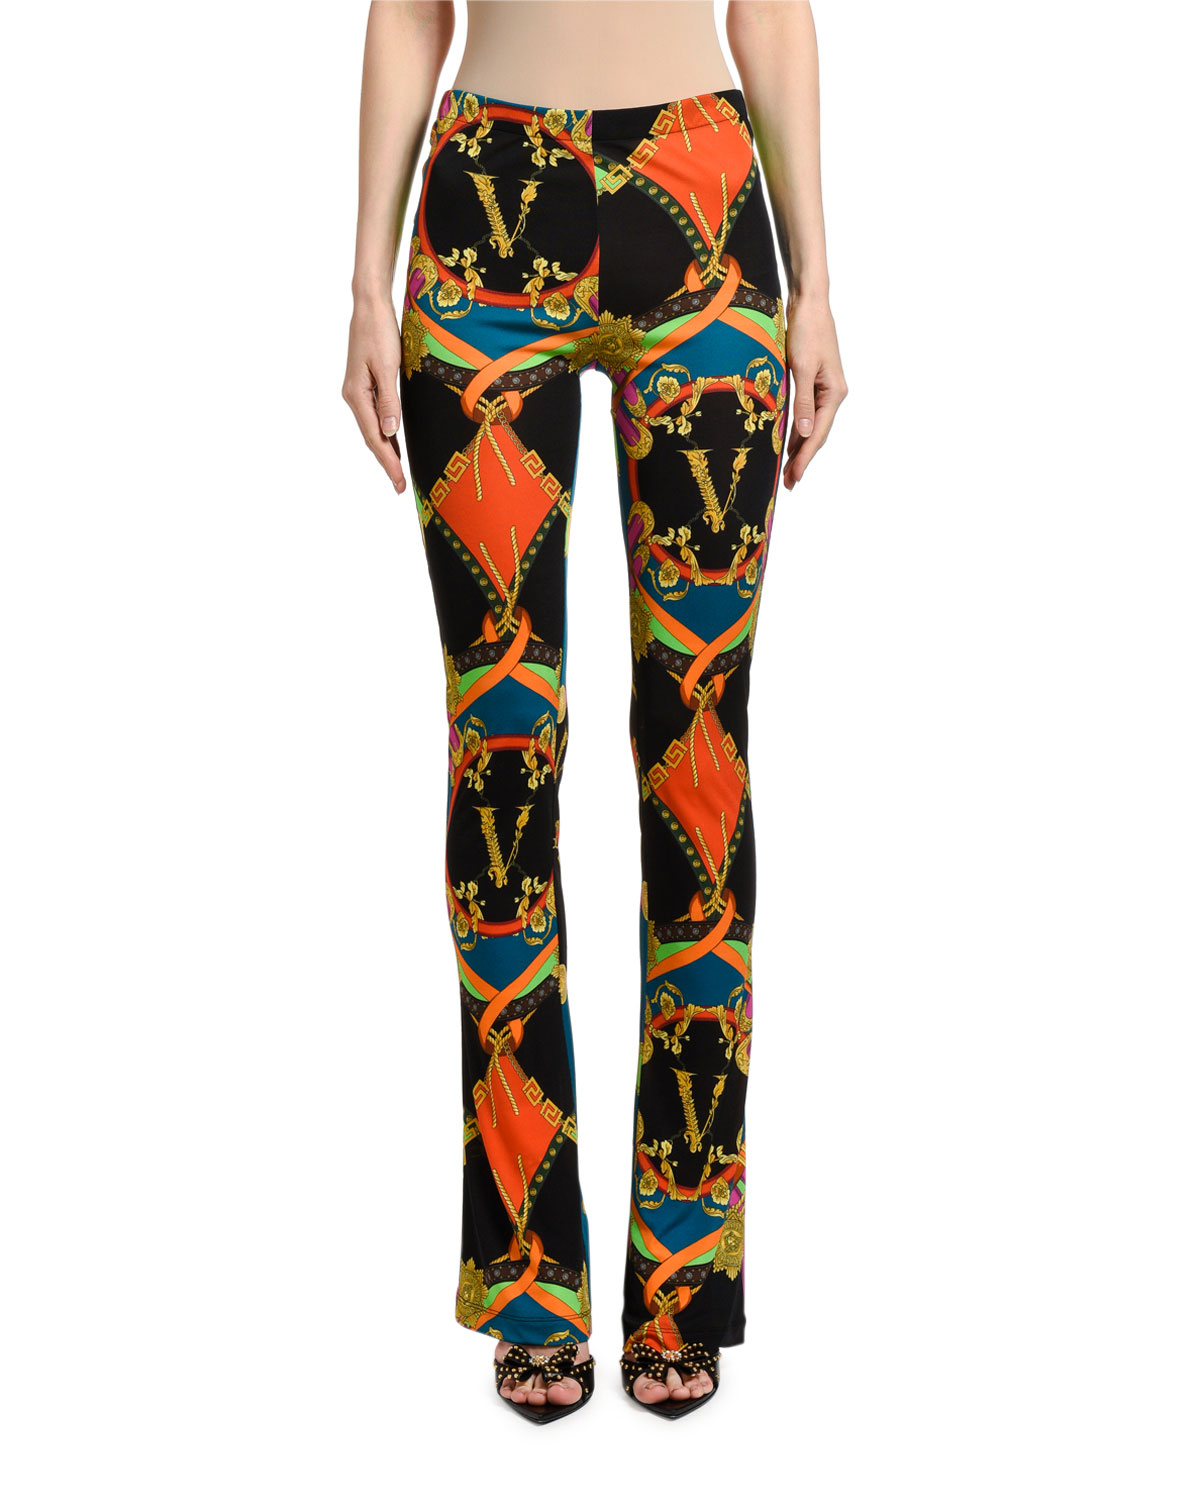 Multicolor Greek-Key-Print Flared Leggings